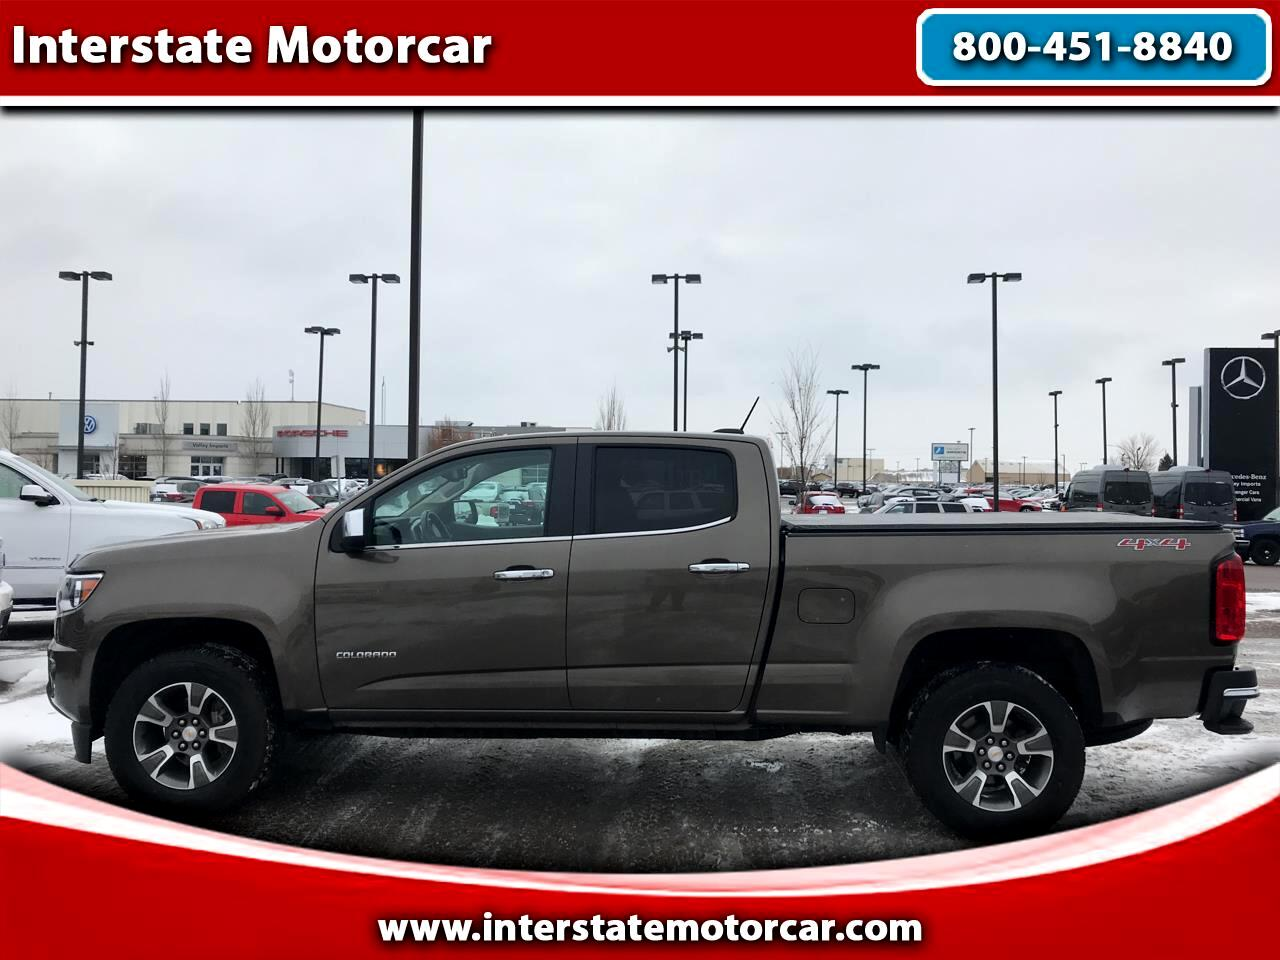 2015 Chevrolet Colorado 4WD Crew Cab 140.5